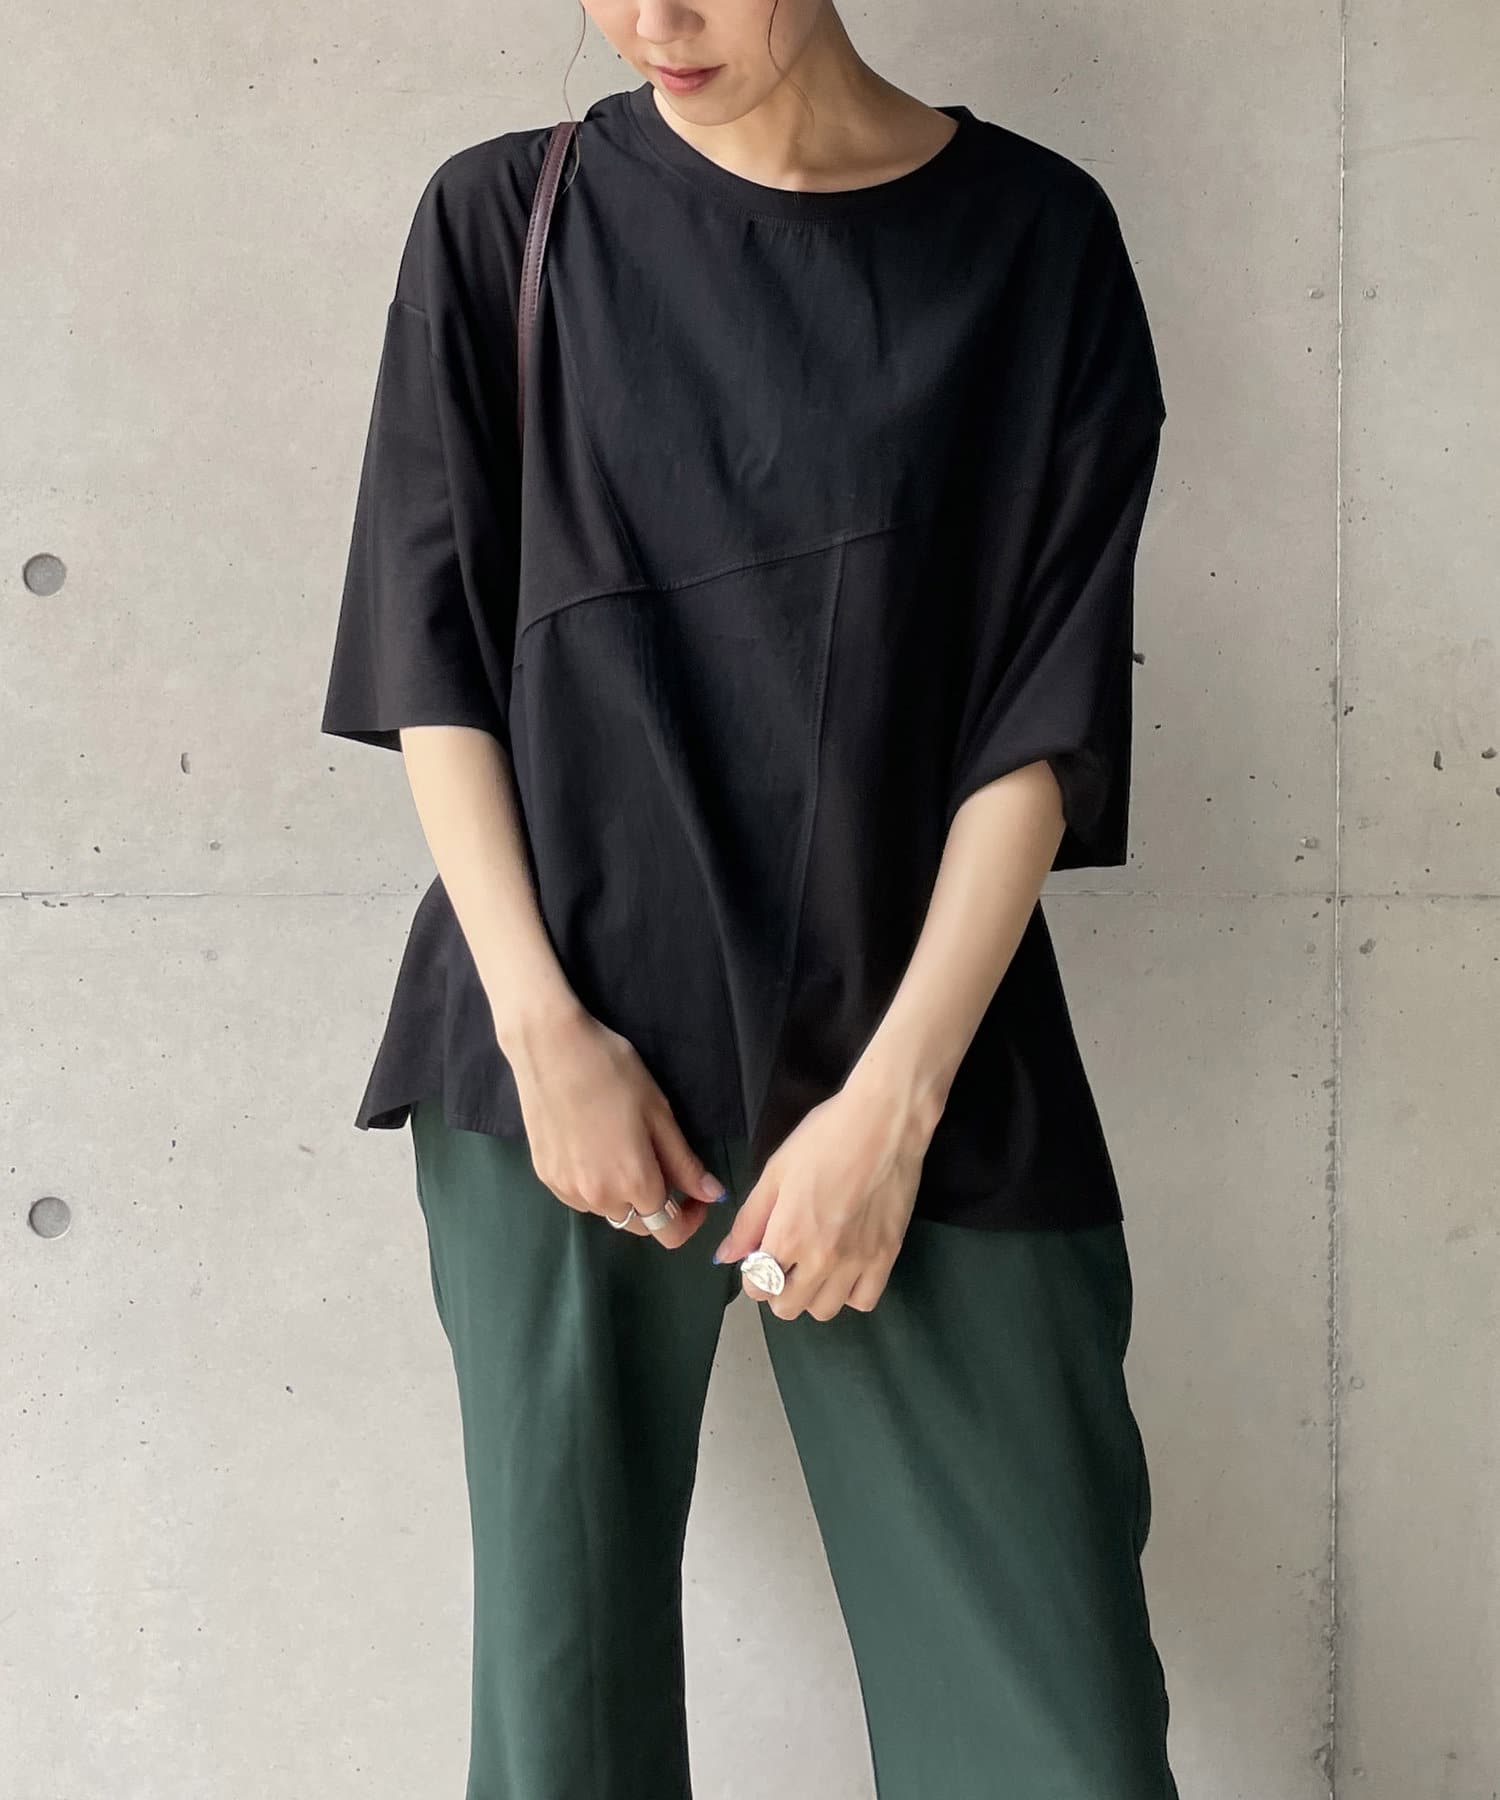 CAPRICIEUX LE'MAGE(カプリシュレマージュ) 〈WEB限定〉異素材パッチワークTシャツ